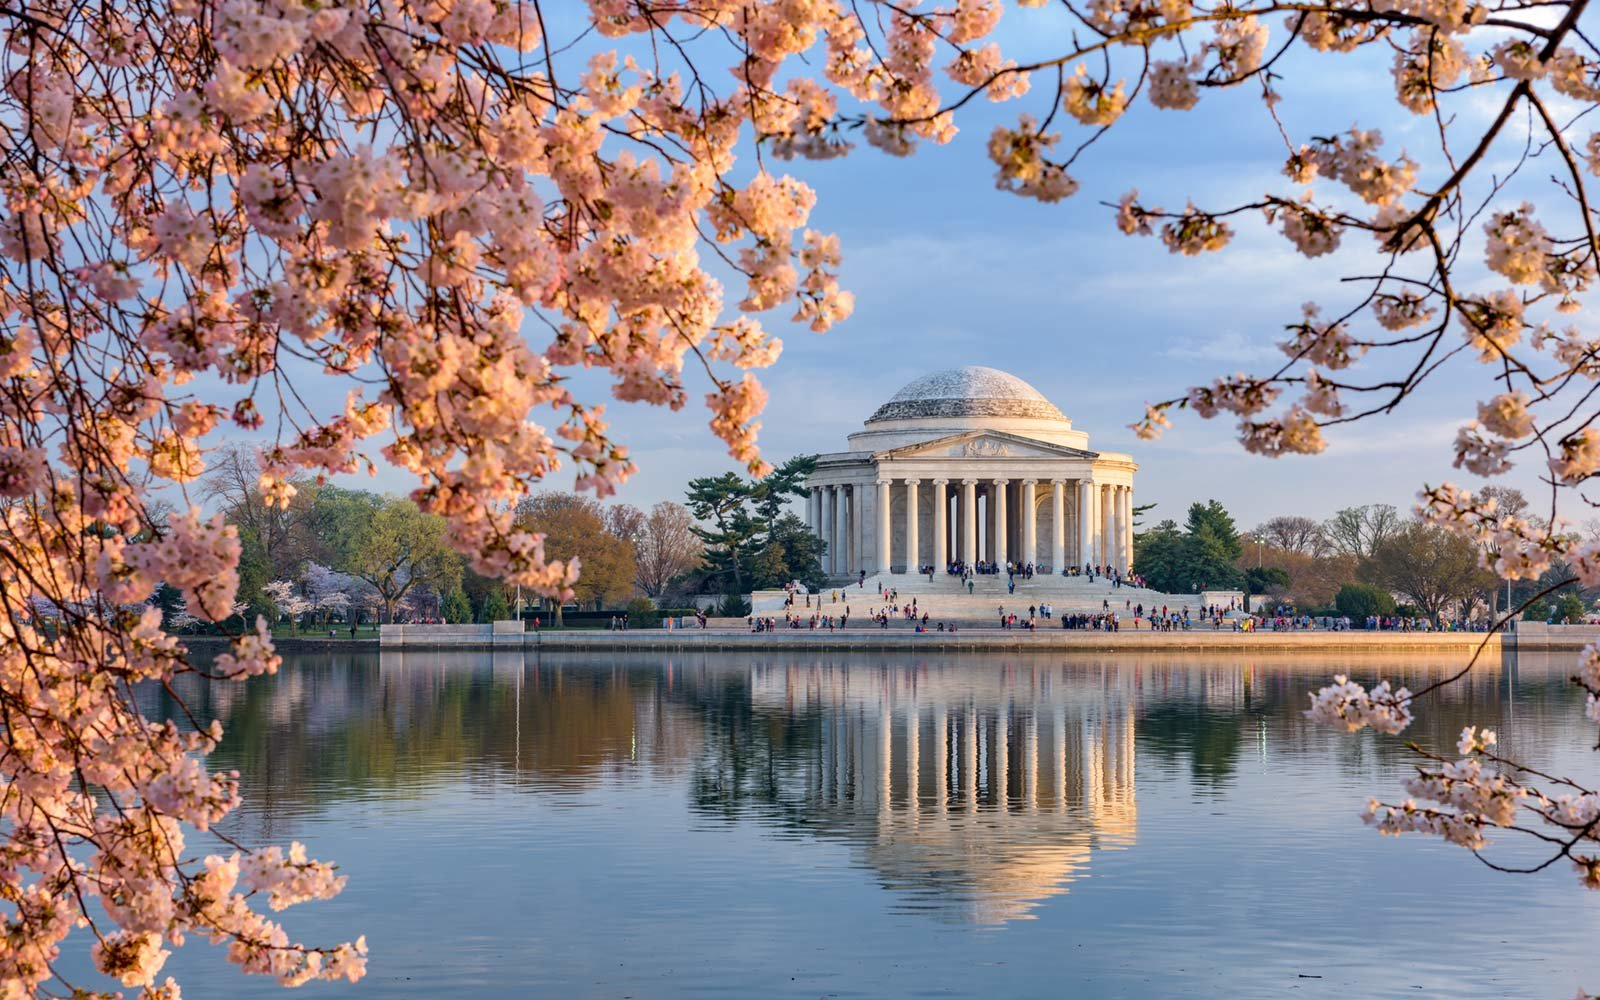 Cherry Blossoms at Jefferson Memorial in Washington, D.C.